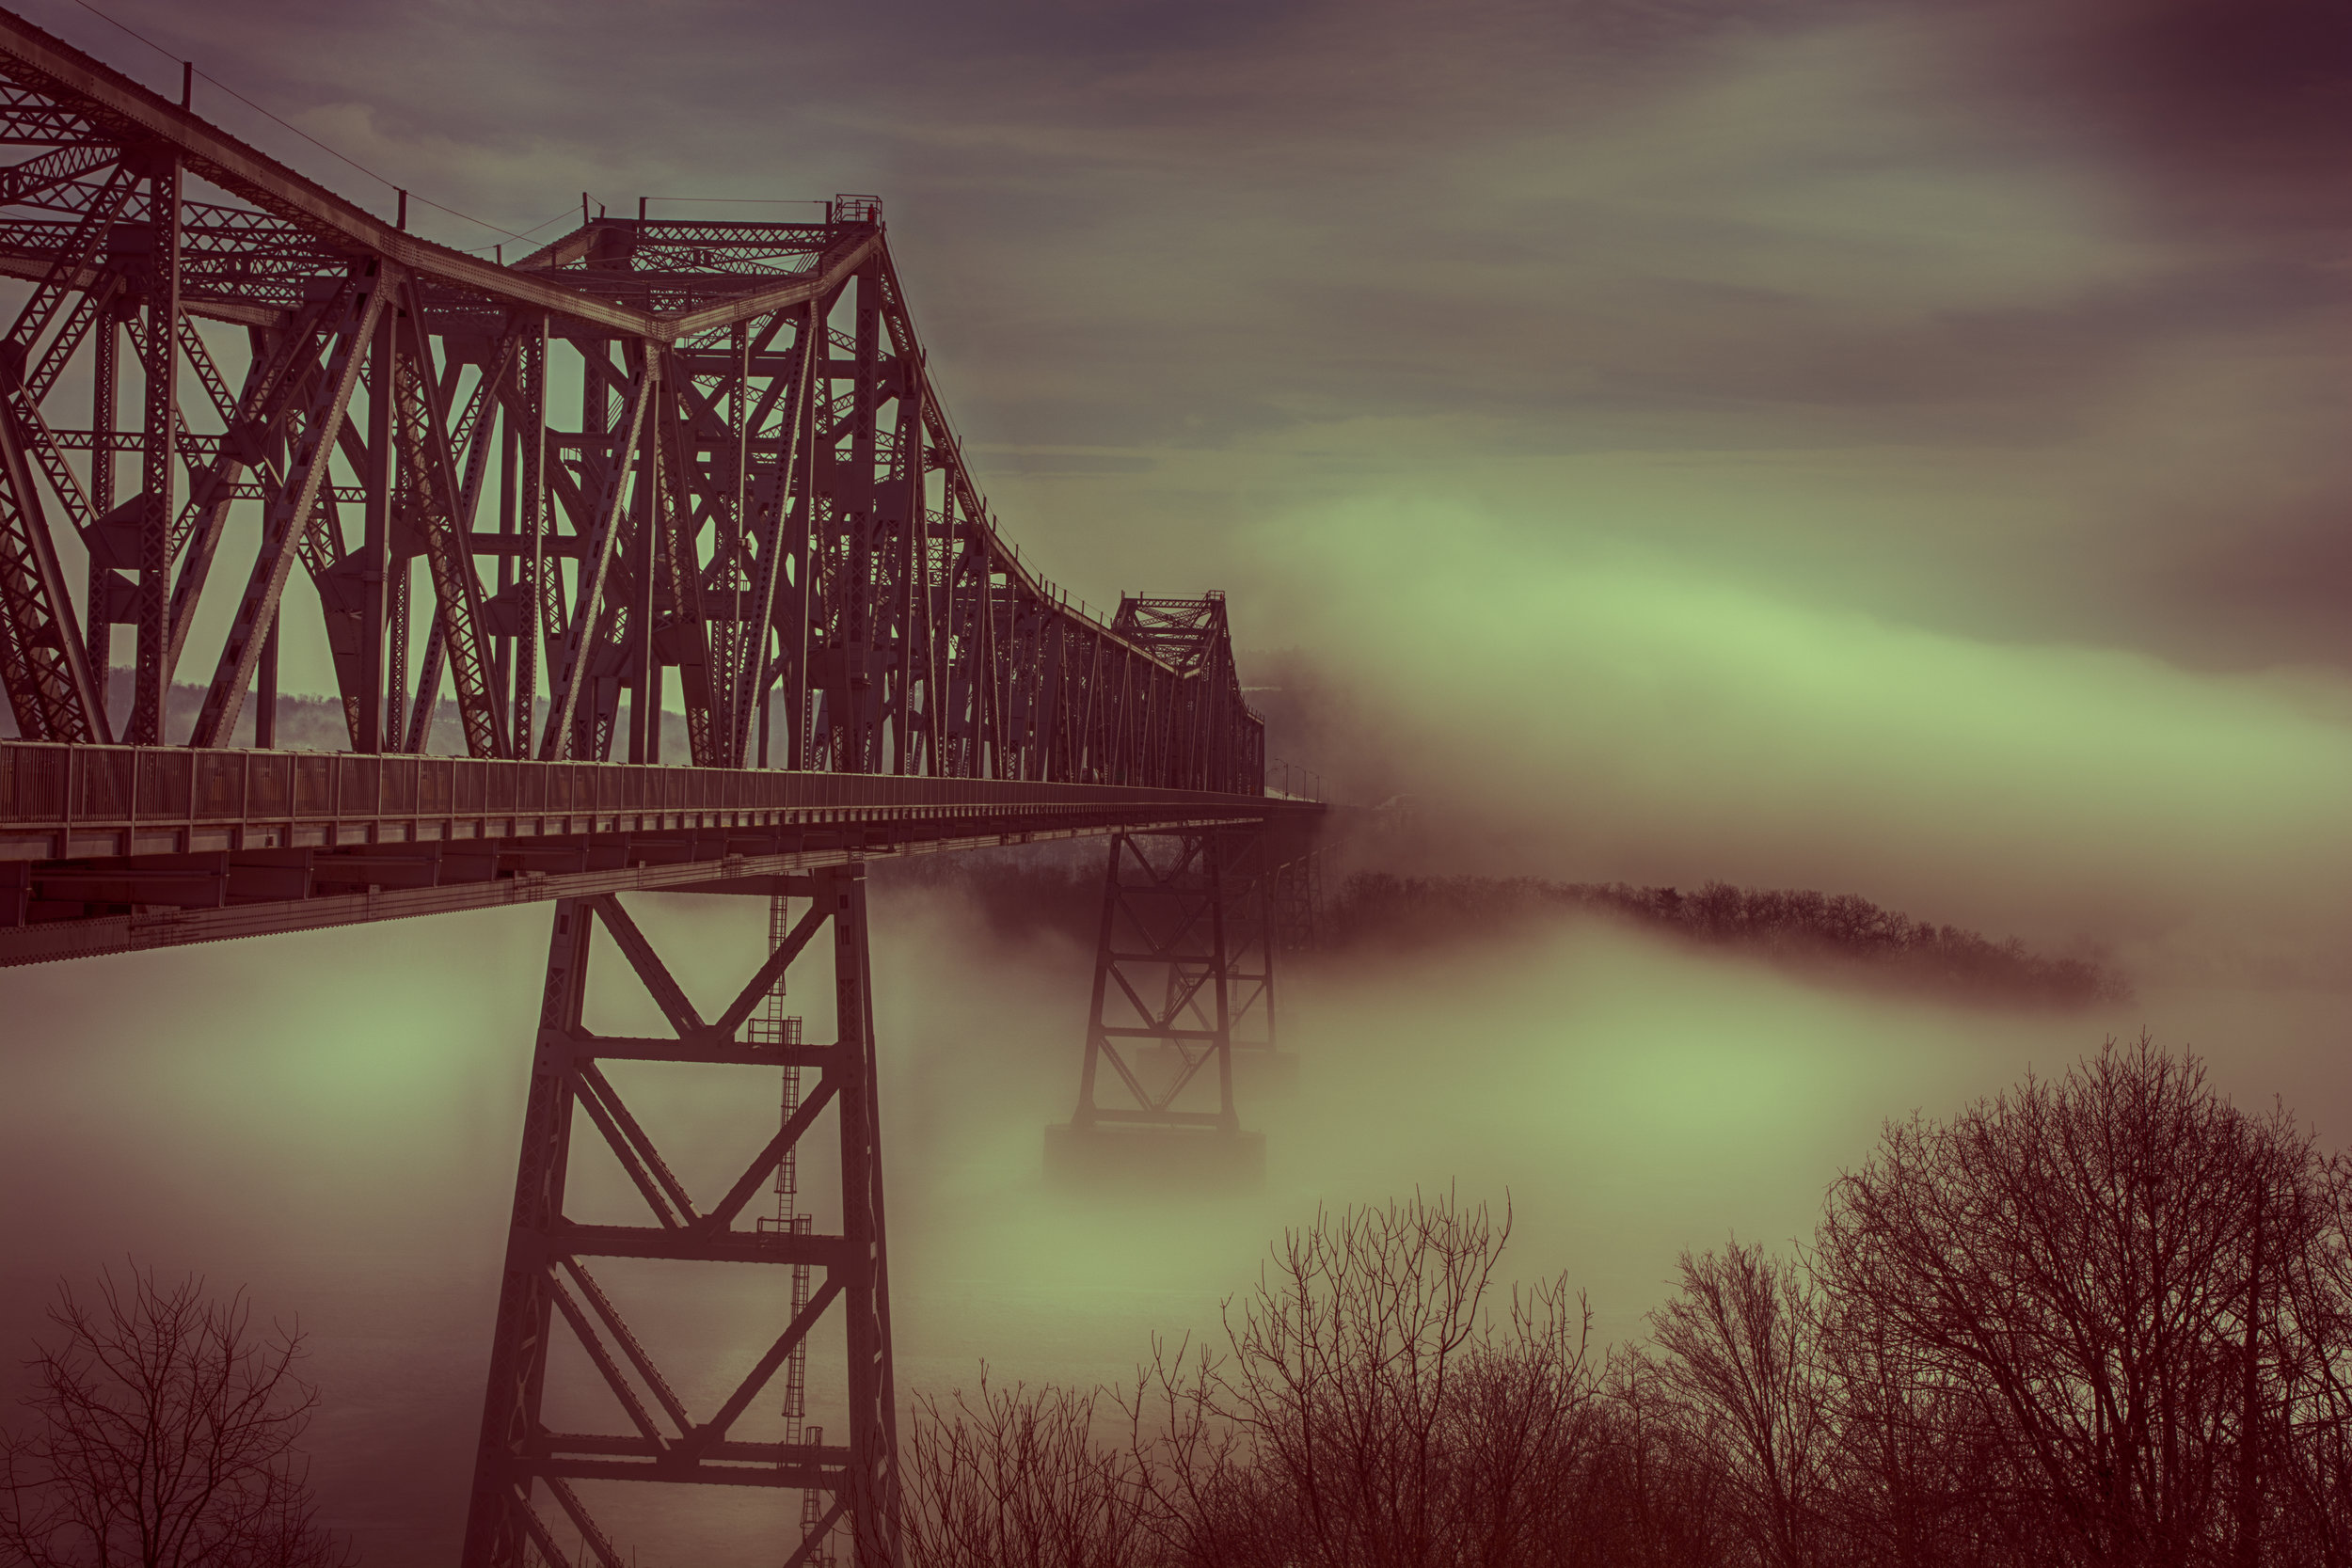 I have always been fascinated by dreams. Where do they come from? How do they develop? What meaning, if any, do they contain? Not long ago, I took a photograph of the Rip van Winkle bridge disappearing into a fog bank. It occurred to me that a dream is like that; the mind disappears in the mist and shapes and forms get distorted. A dream is a mirror image of reality on some level. My dreams are populated with people I know and on rare occasions, by creatures from the darkest depths of my id. Sometimes I remember them in great detail. More often only an uneasy feeling remains. I don't know how to interpret my dreams and I'm not sure I really want to learn. There are instances when I can connect a dream to some final thought as I drifted off to sleep. But it is the element of surprise that is more intriguing to me! Where did that come from? As disconcerting as they can sometimes be, I know one thing for sure; if I'm still dreaming I'm still alive, and that's a good thing! Here is my Bridge in Fog in 4 parts: